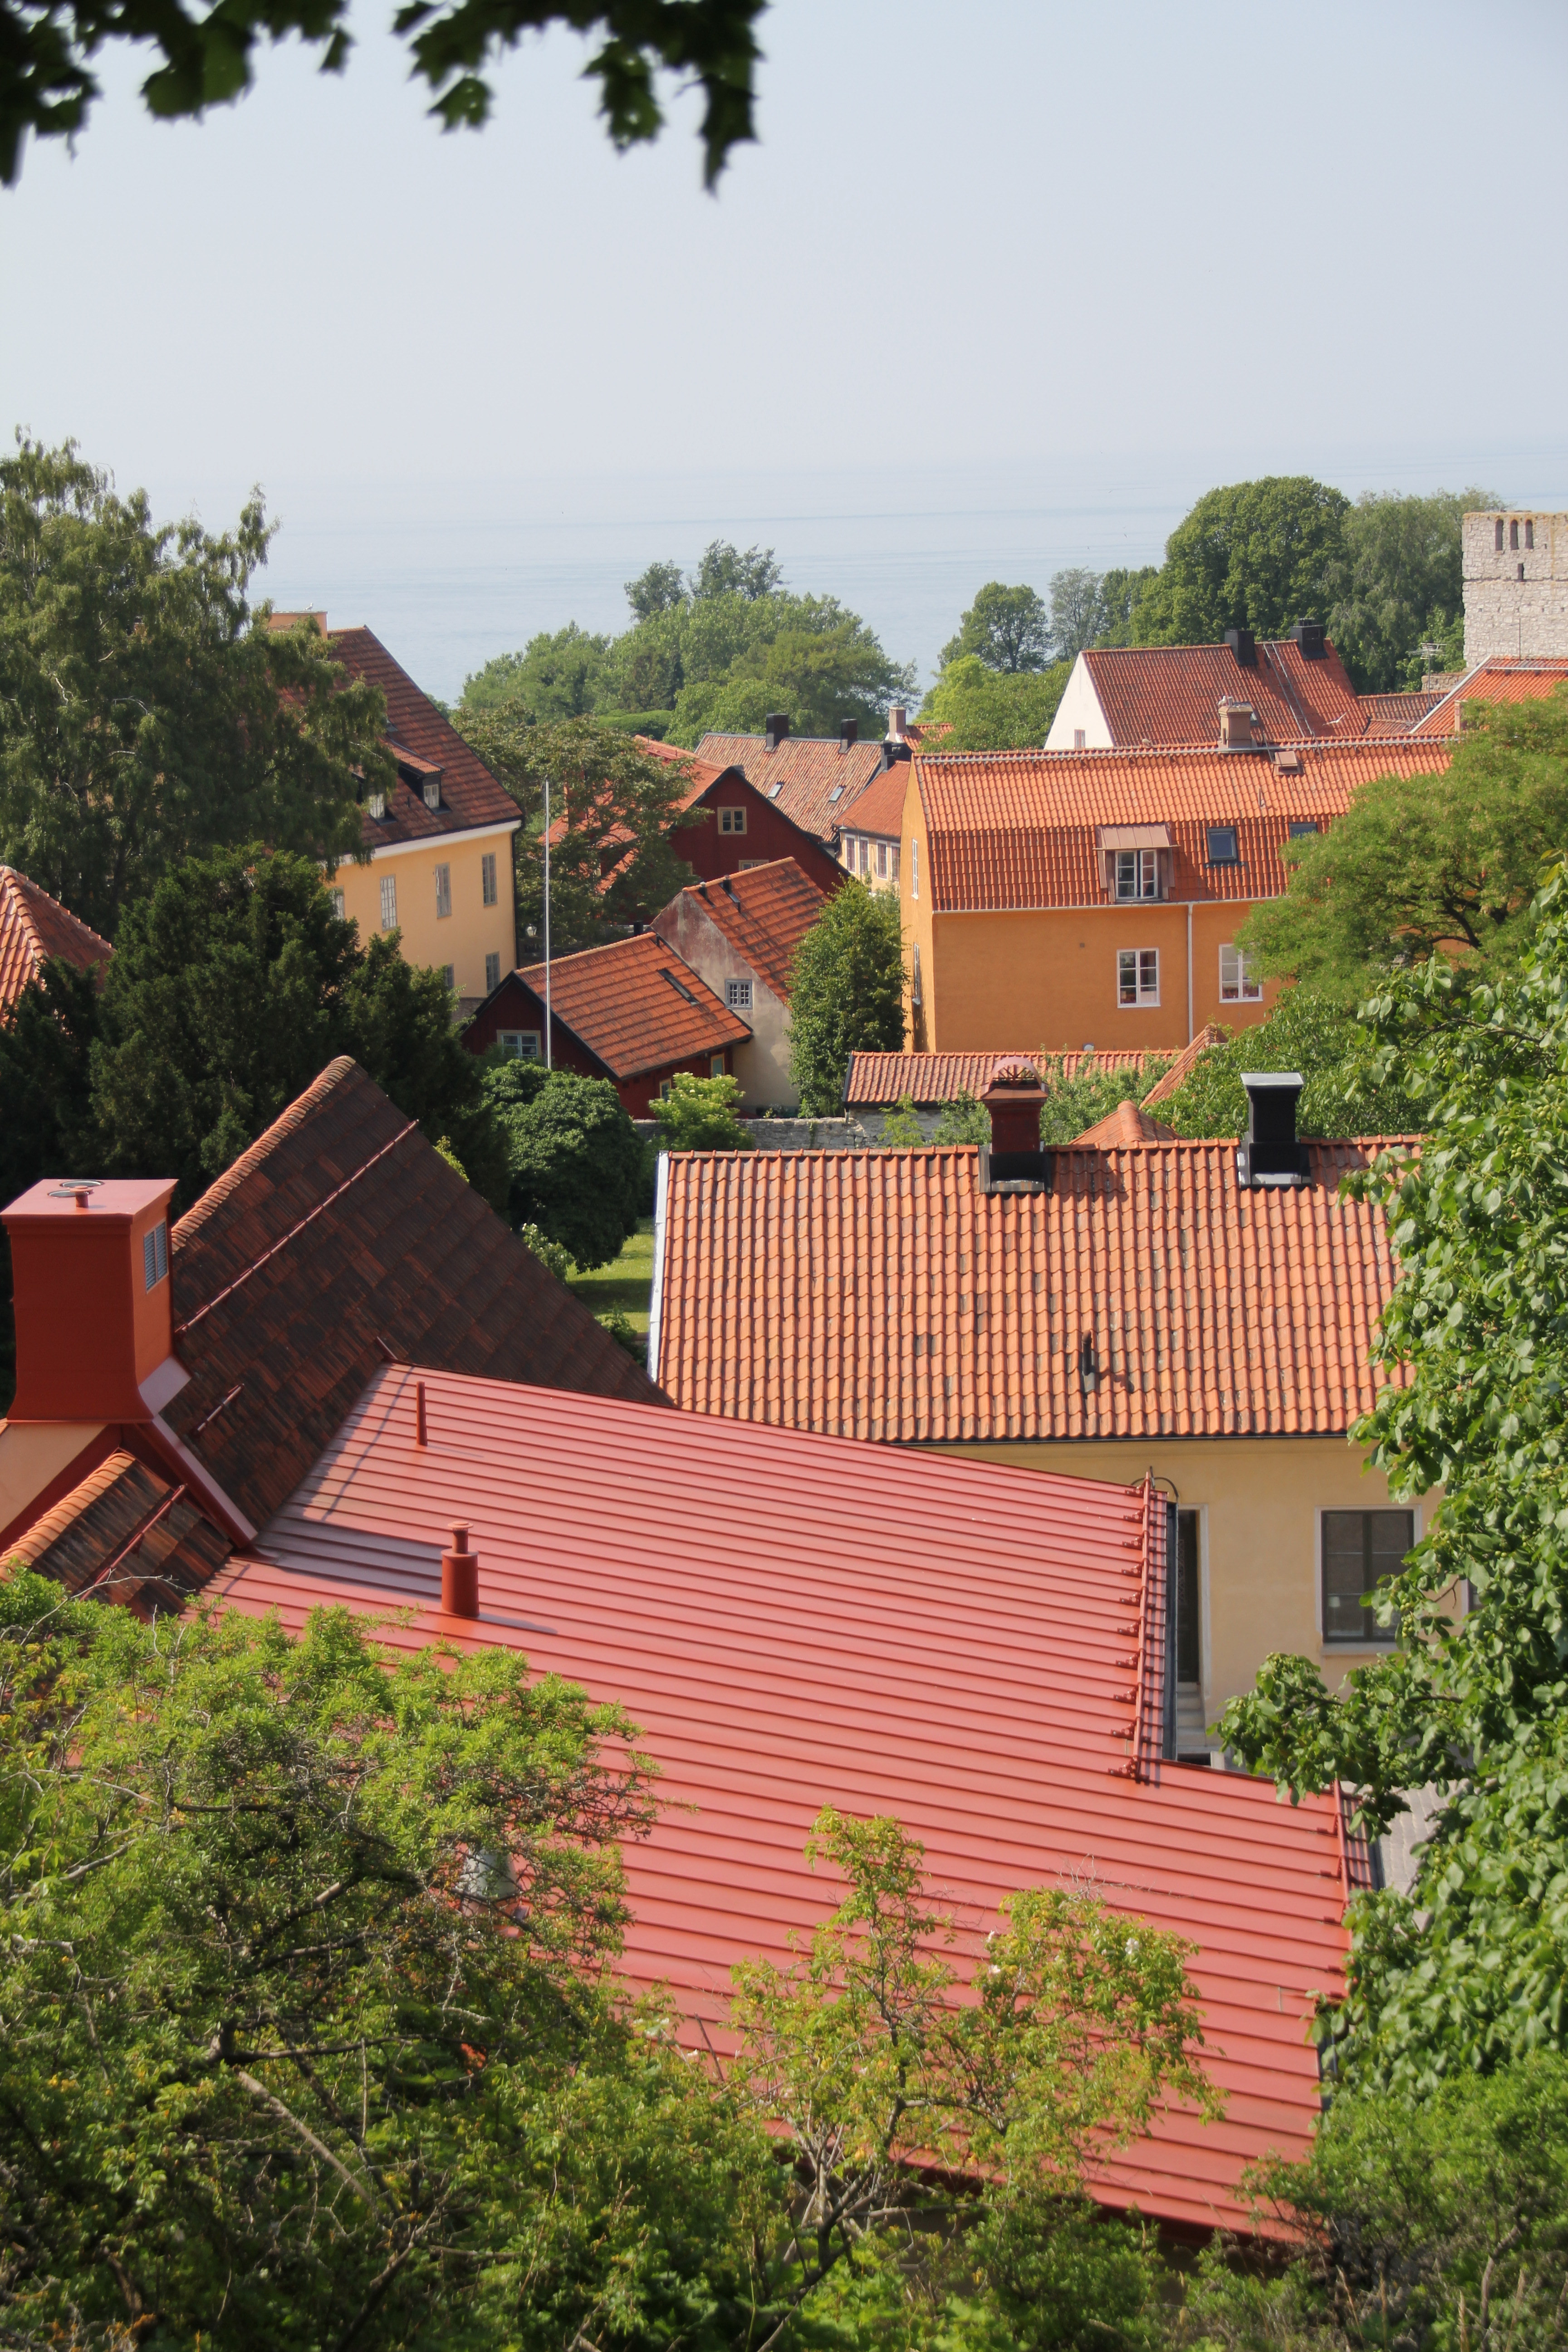 Visit the Old town of Porvoo